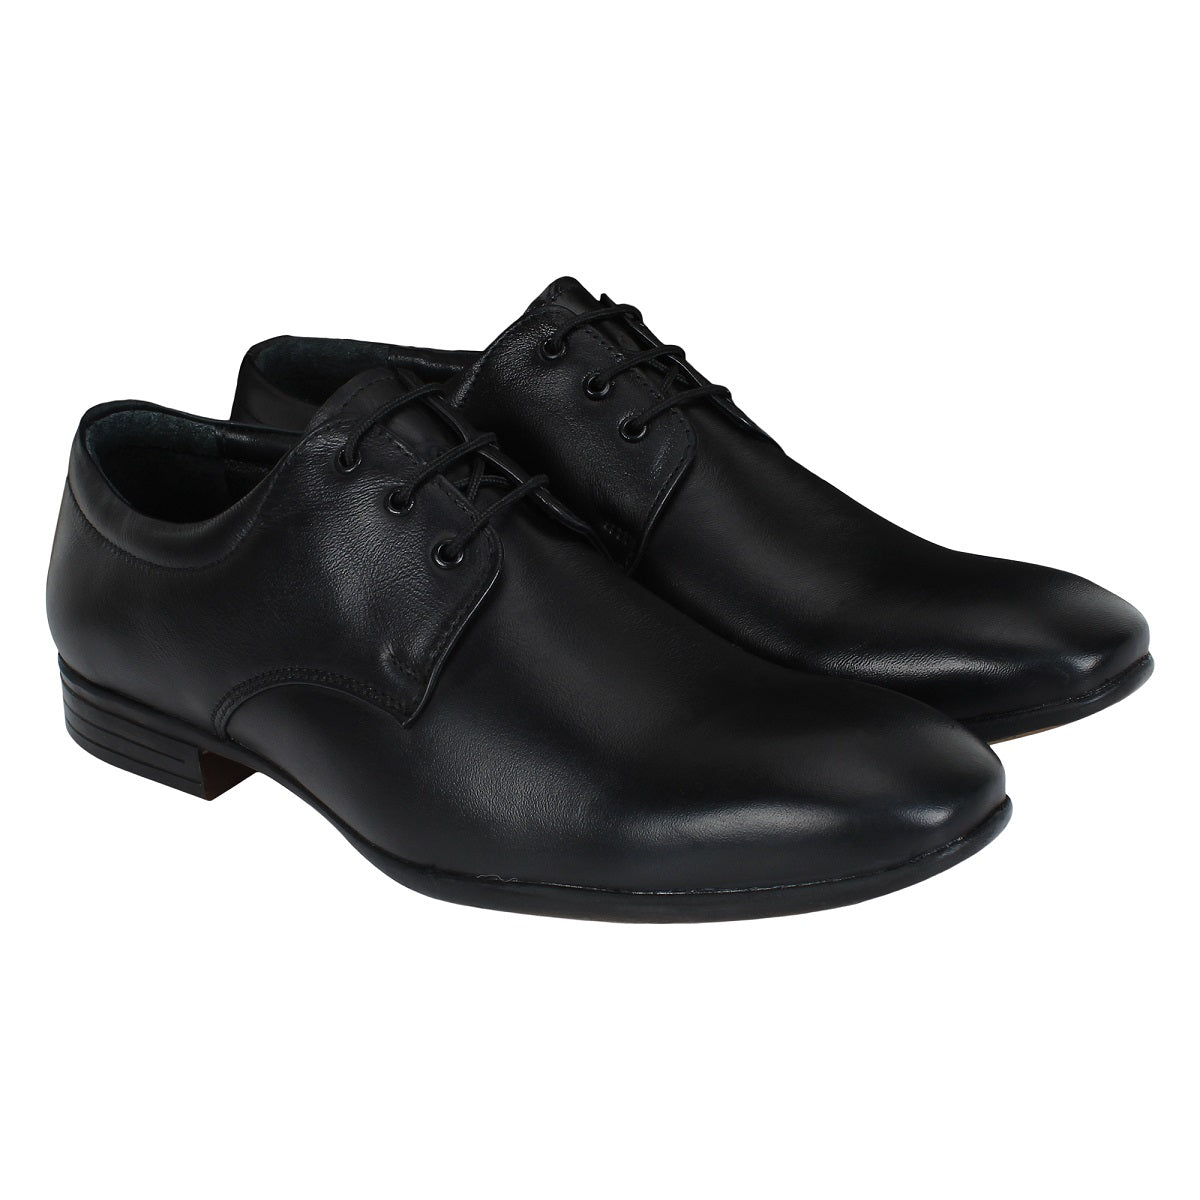 RoarKing Square Toe Formal Shoes for Men - SeeandWear